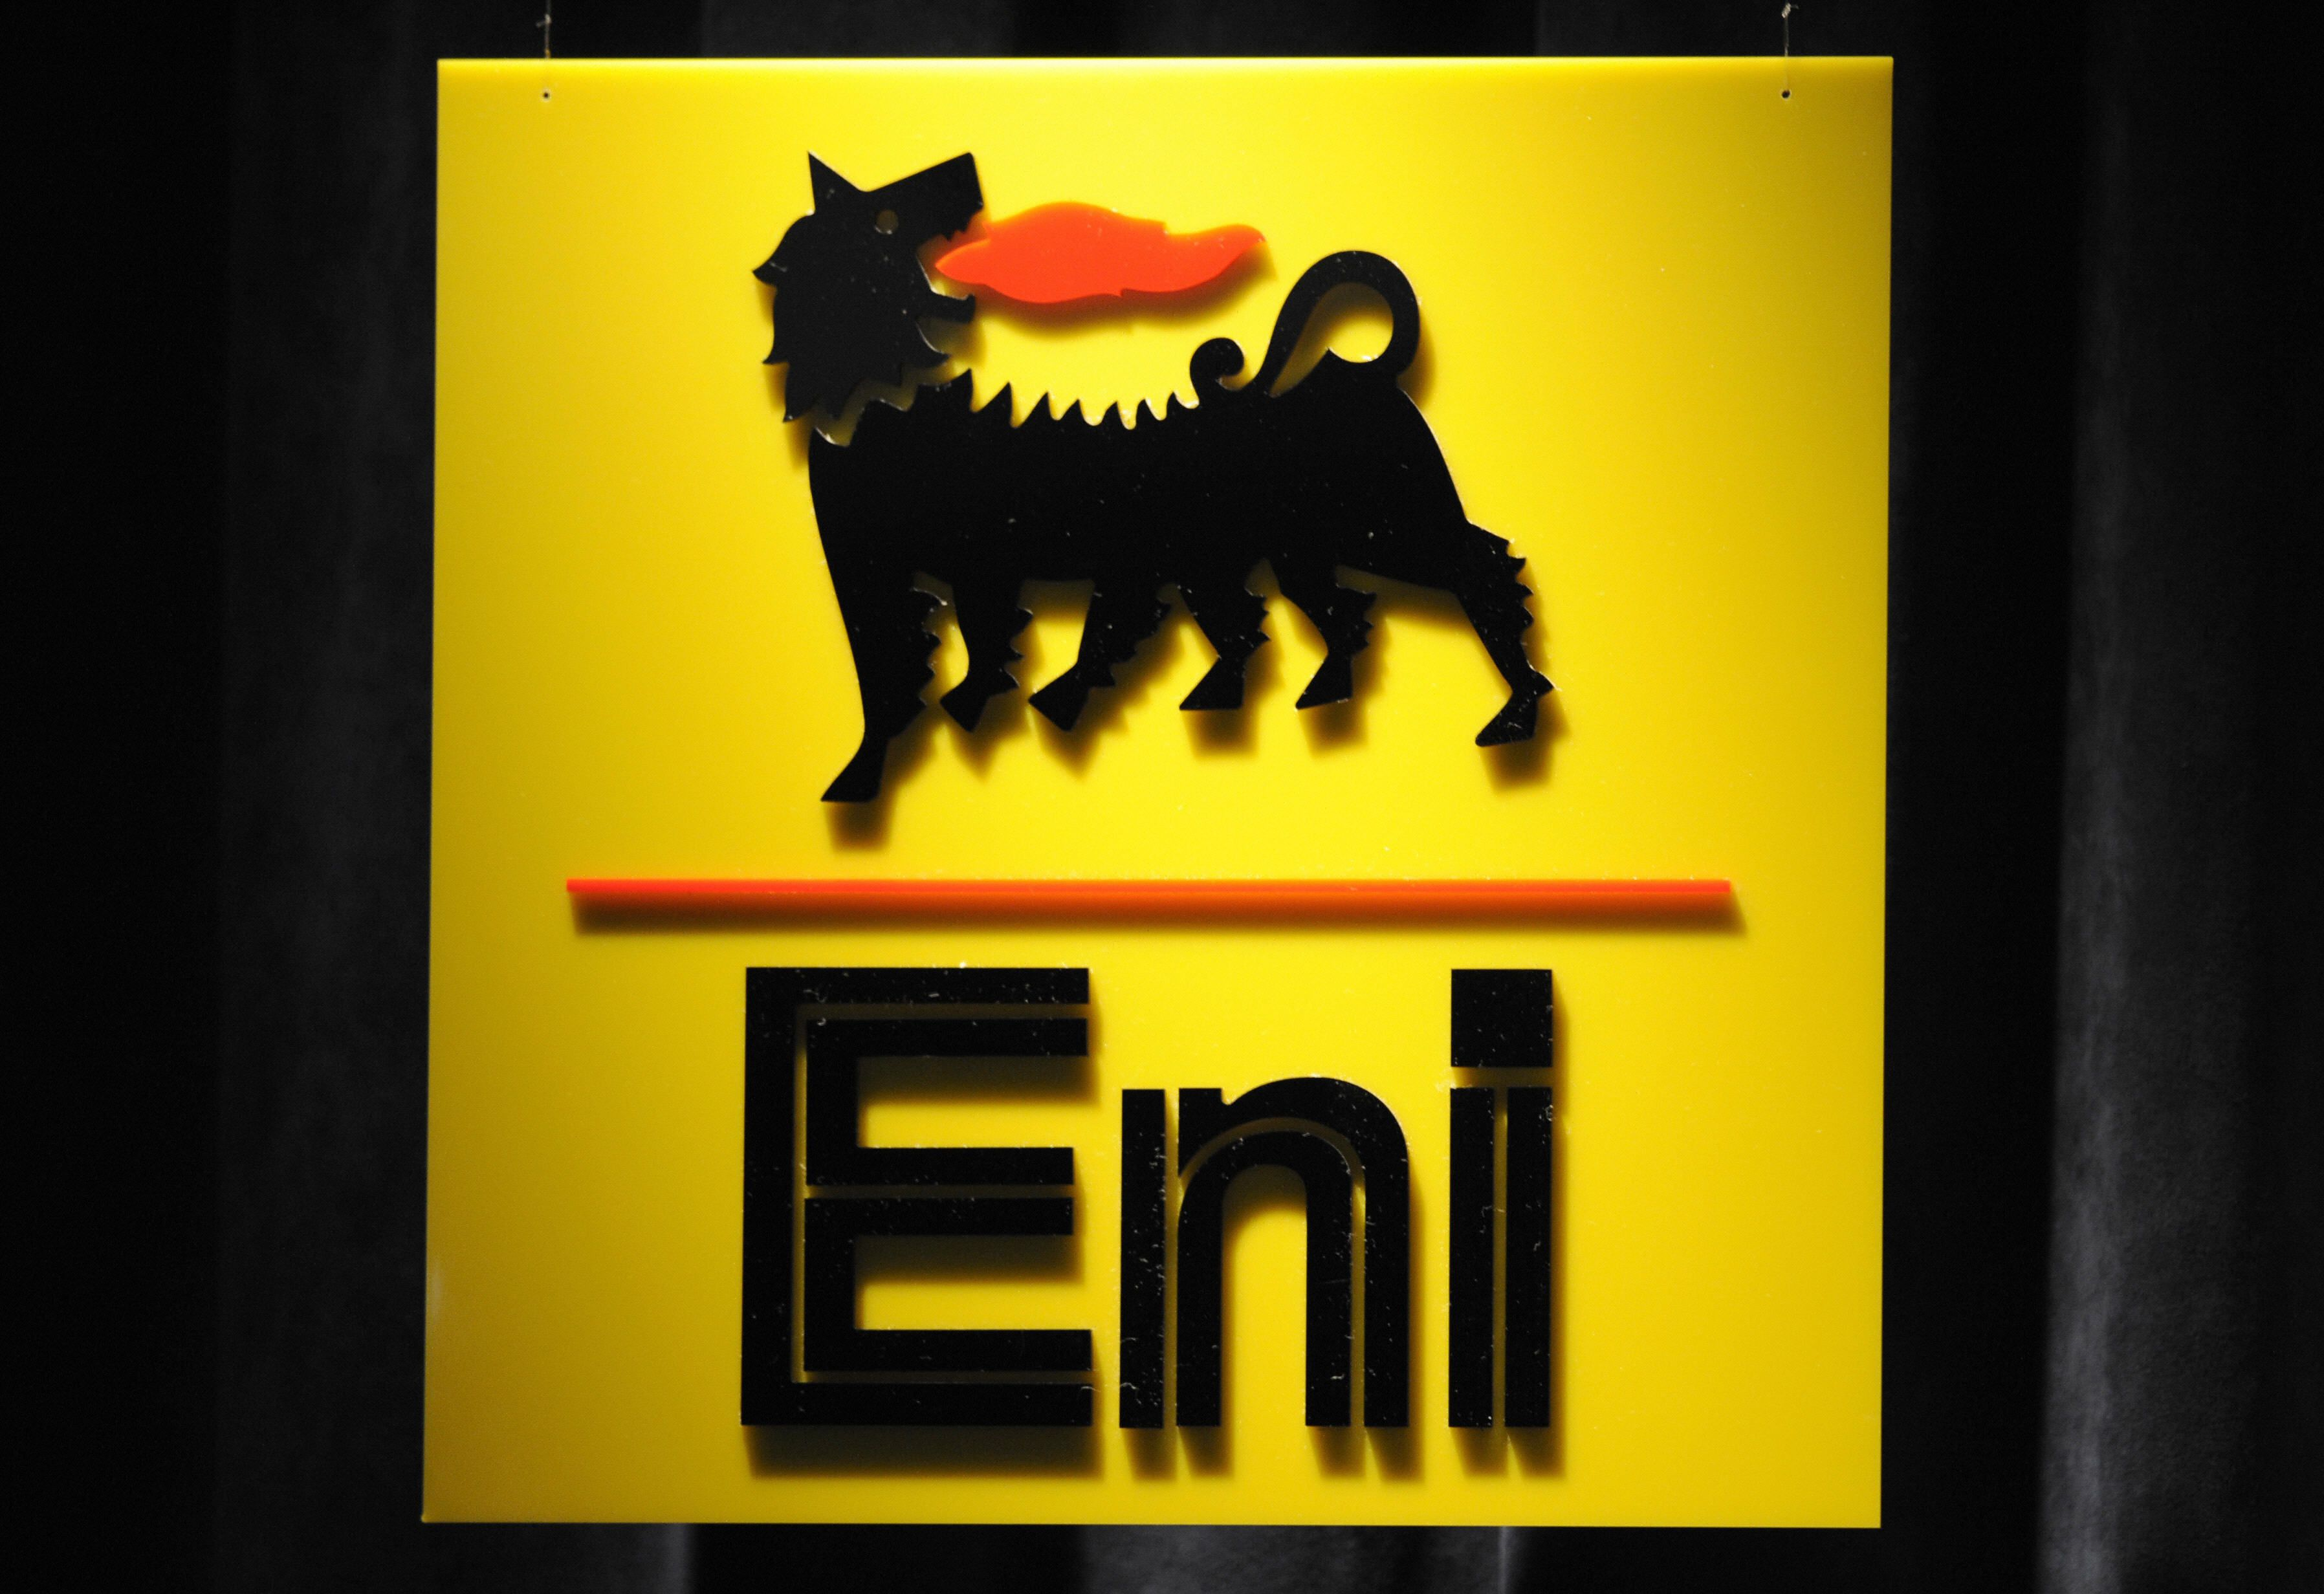 Italian energy giant ENI logo is pictured  during the presentation of results and strategy press conference at ENI's headquarters in Milan, on February 15, 2008. Enel reported today that its 2007 adjusted net profit fell 9.0 percent to 9.47 billion euros (13.82 billion dollars) as a strong euro and higher costs more than offset rising oil prices. AFP PHOTO DAMIEN MEYER (Photo credit should read DAMIEN MEYER/AFP/Getty Images)